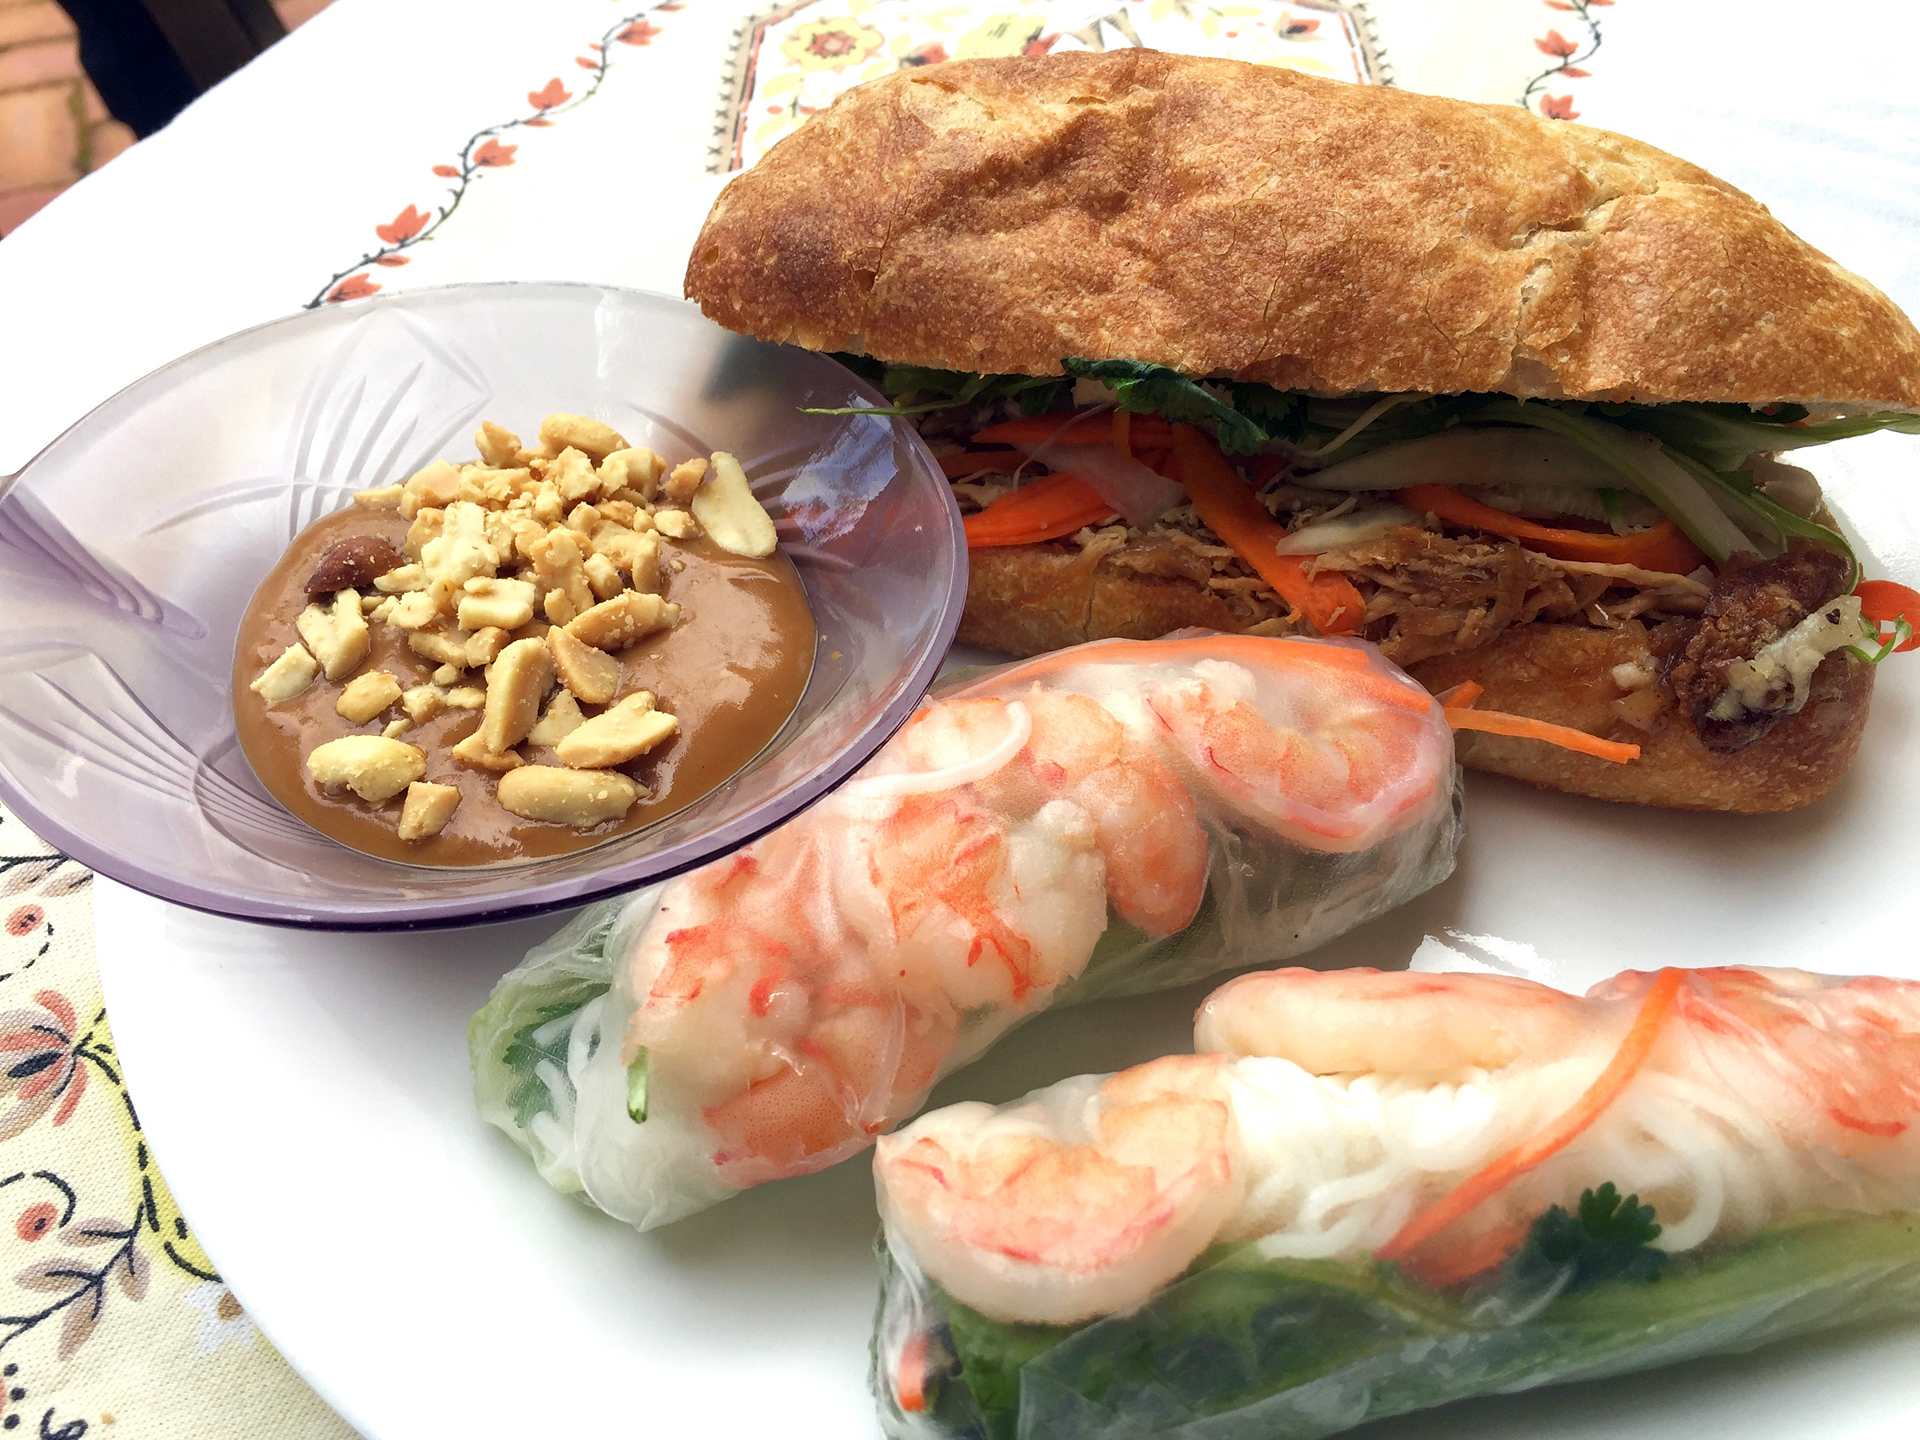 Shrimp rolls and banh mi sandwich made by Thoa van Seventer.